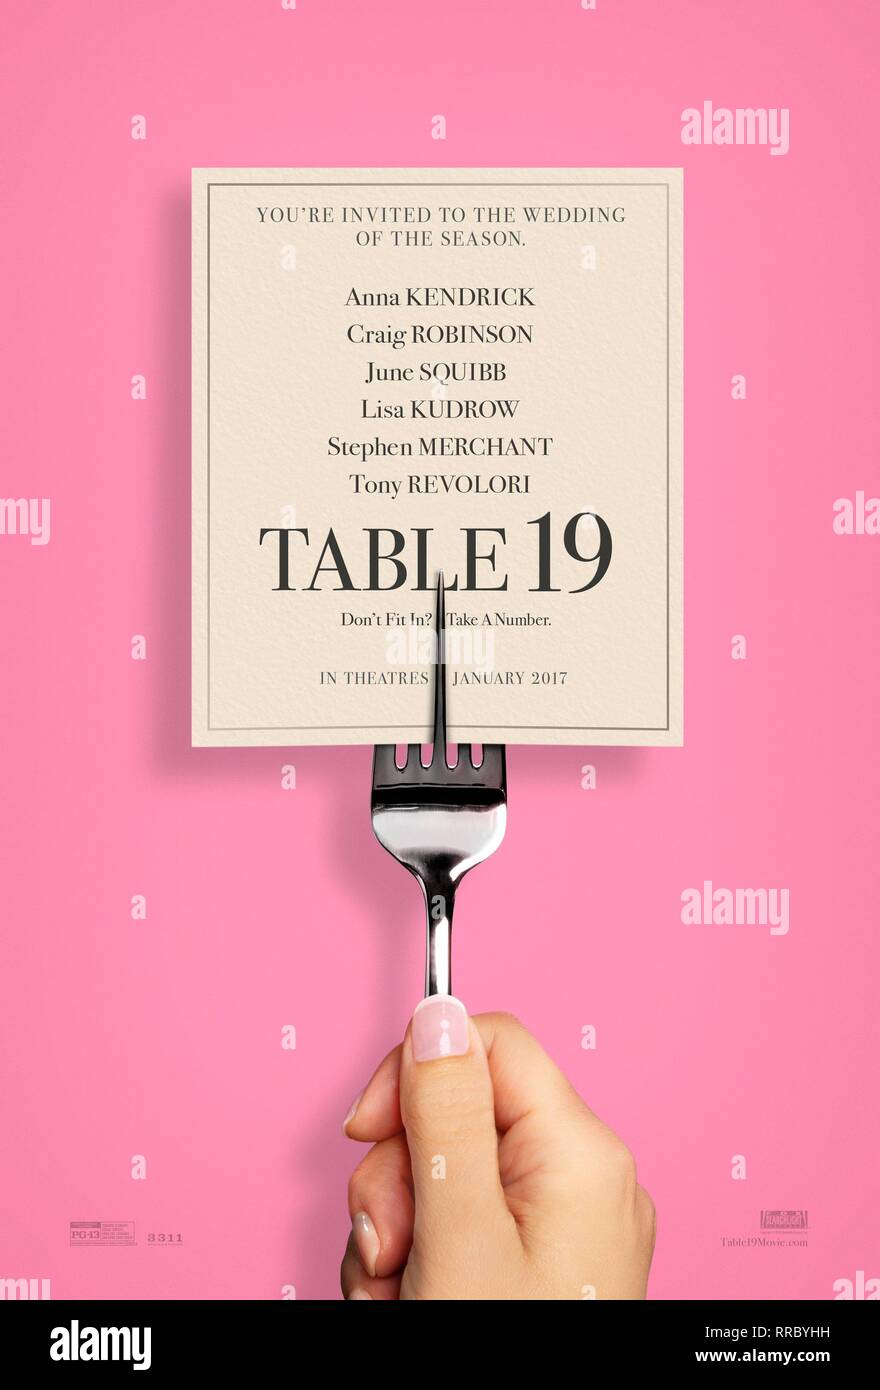 TABLE 19, MOVIE POSTER, 2017 - Stock Image